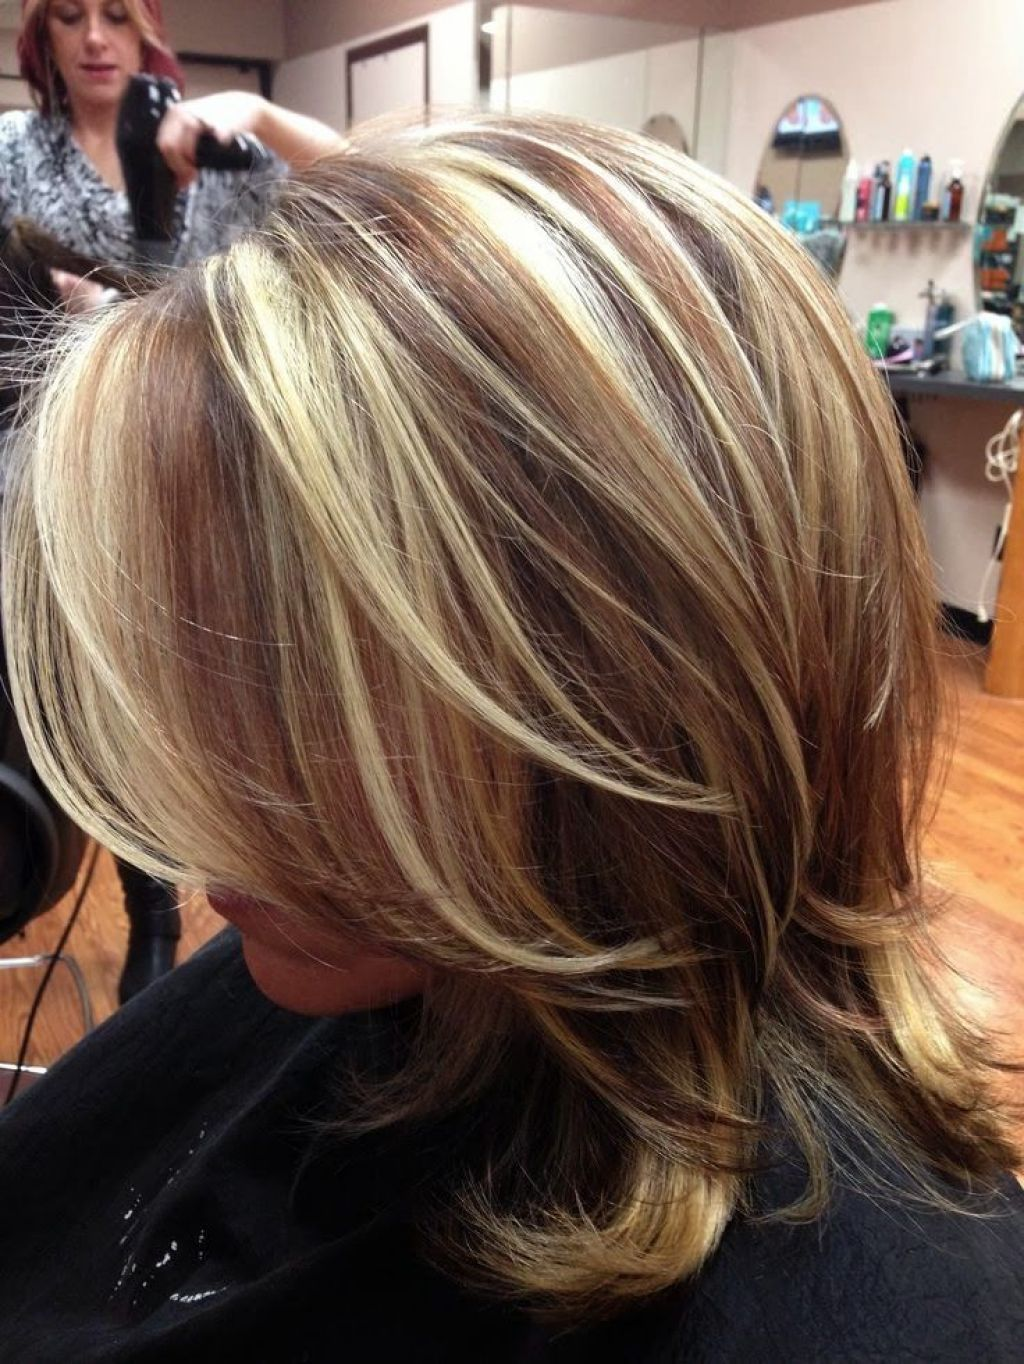 Highlights and lowlights ideas 4 hair color highlight and for Cut and color ideas